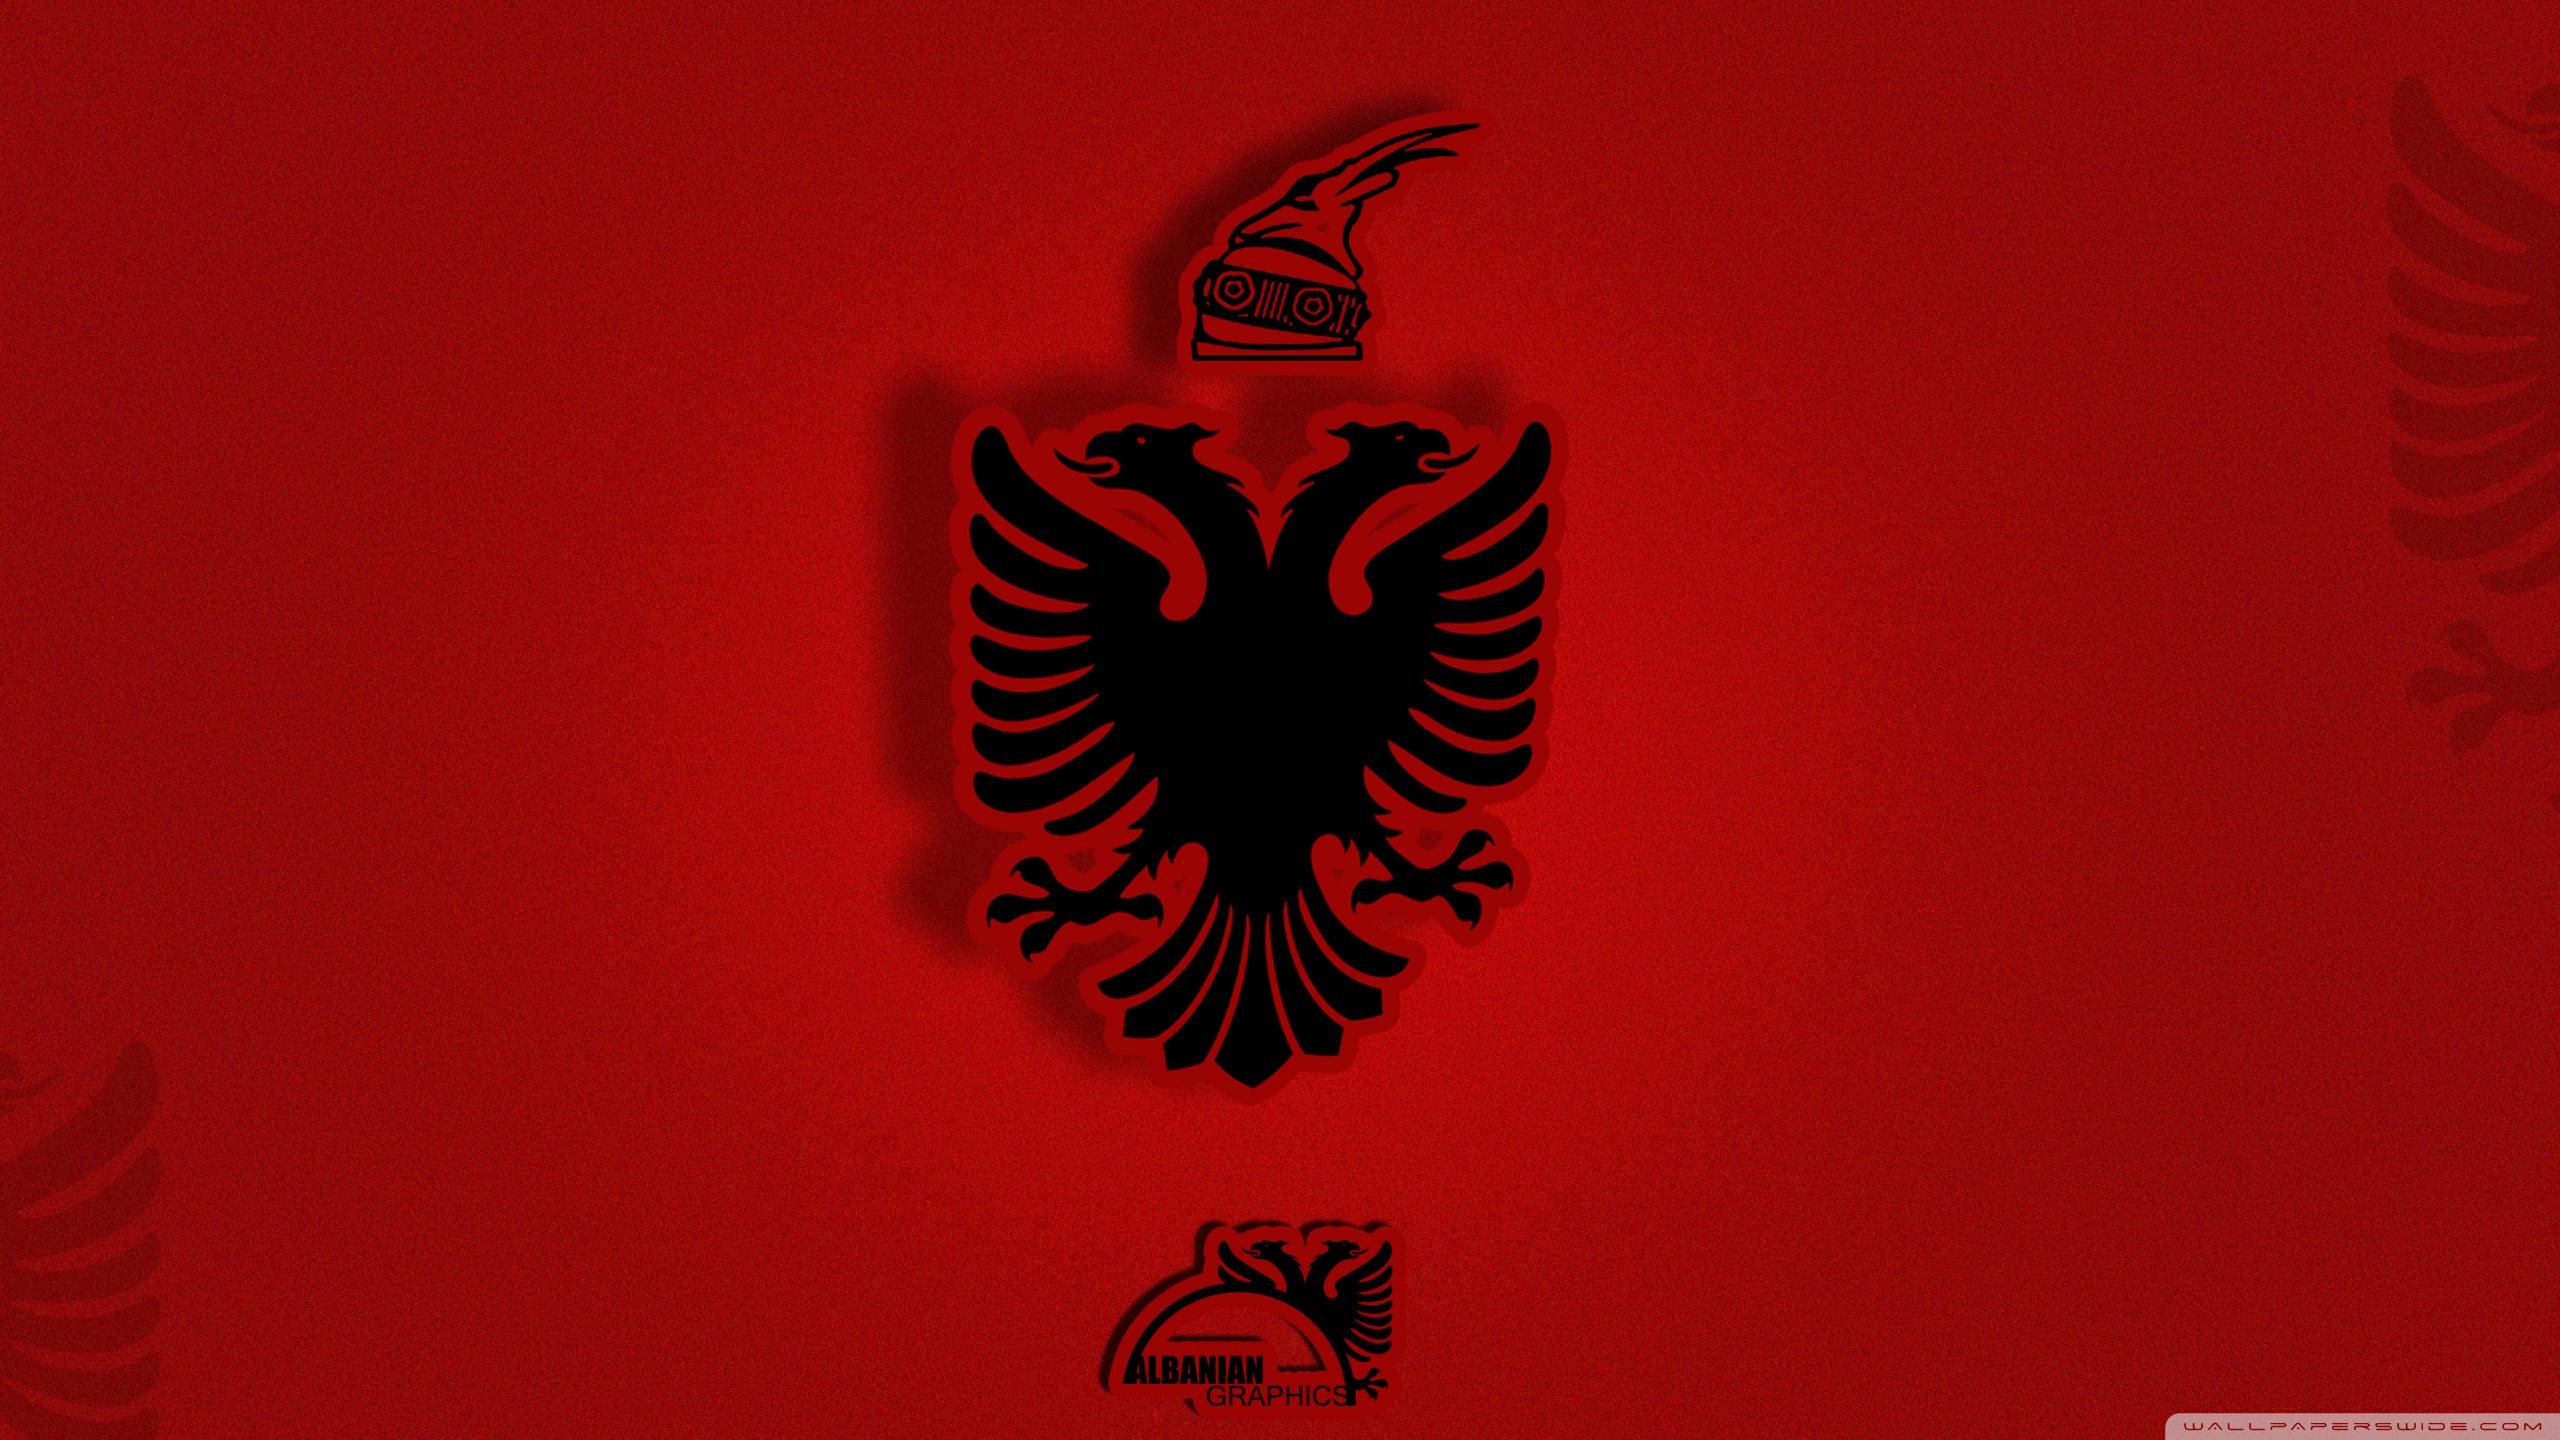 Albania Wallpaper Hd Albanian Flag 4k Hd Desktop Wallpaper For 4k Ultra Hd Tv